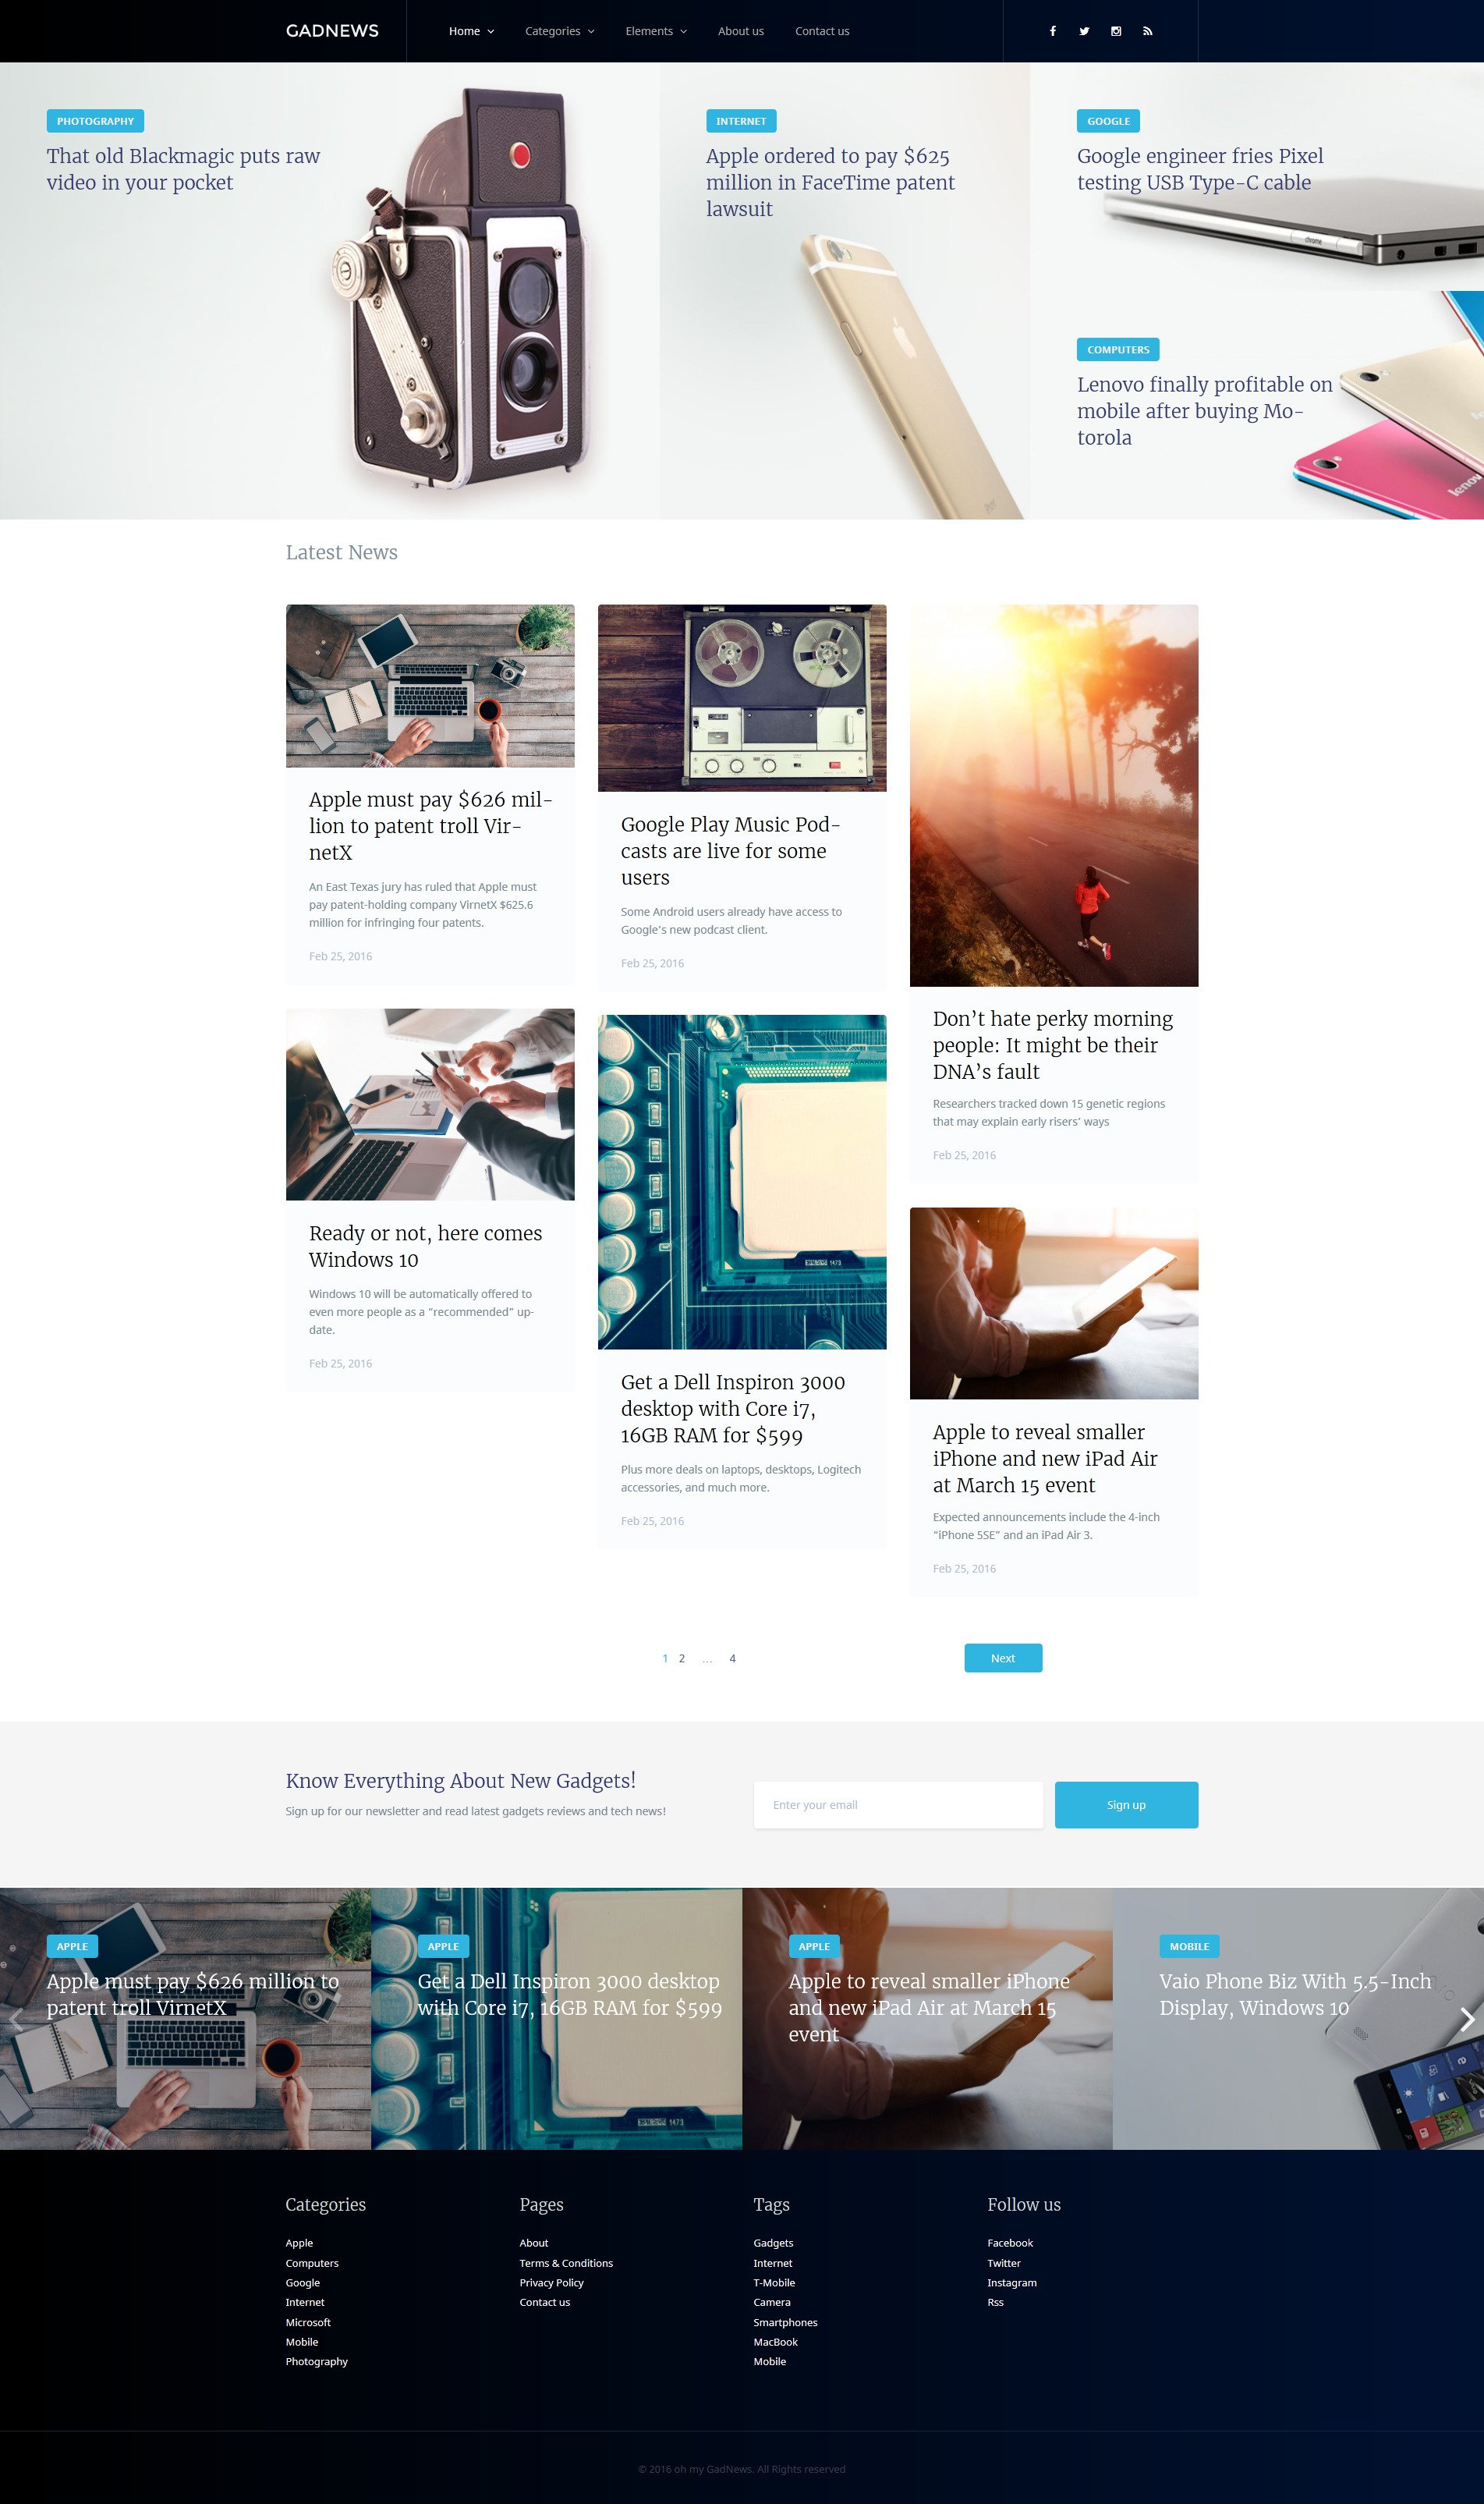 Gadnews - Technology Review Magazine WordPress Theme - screenshot